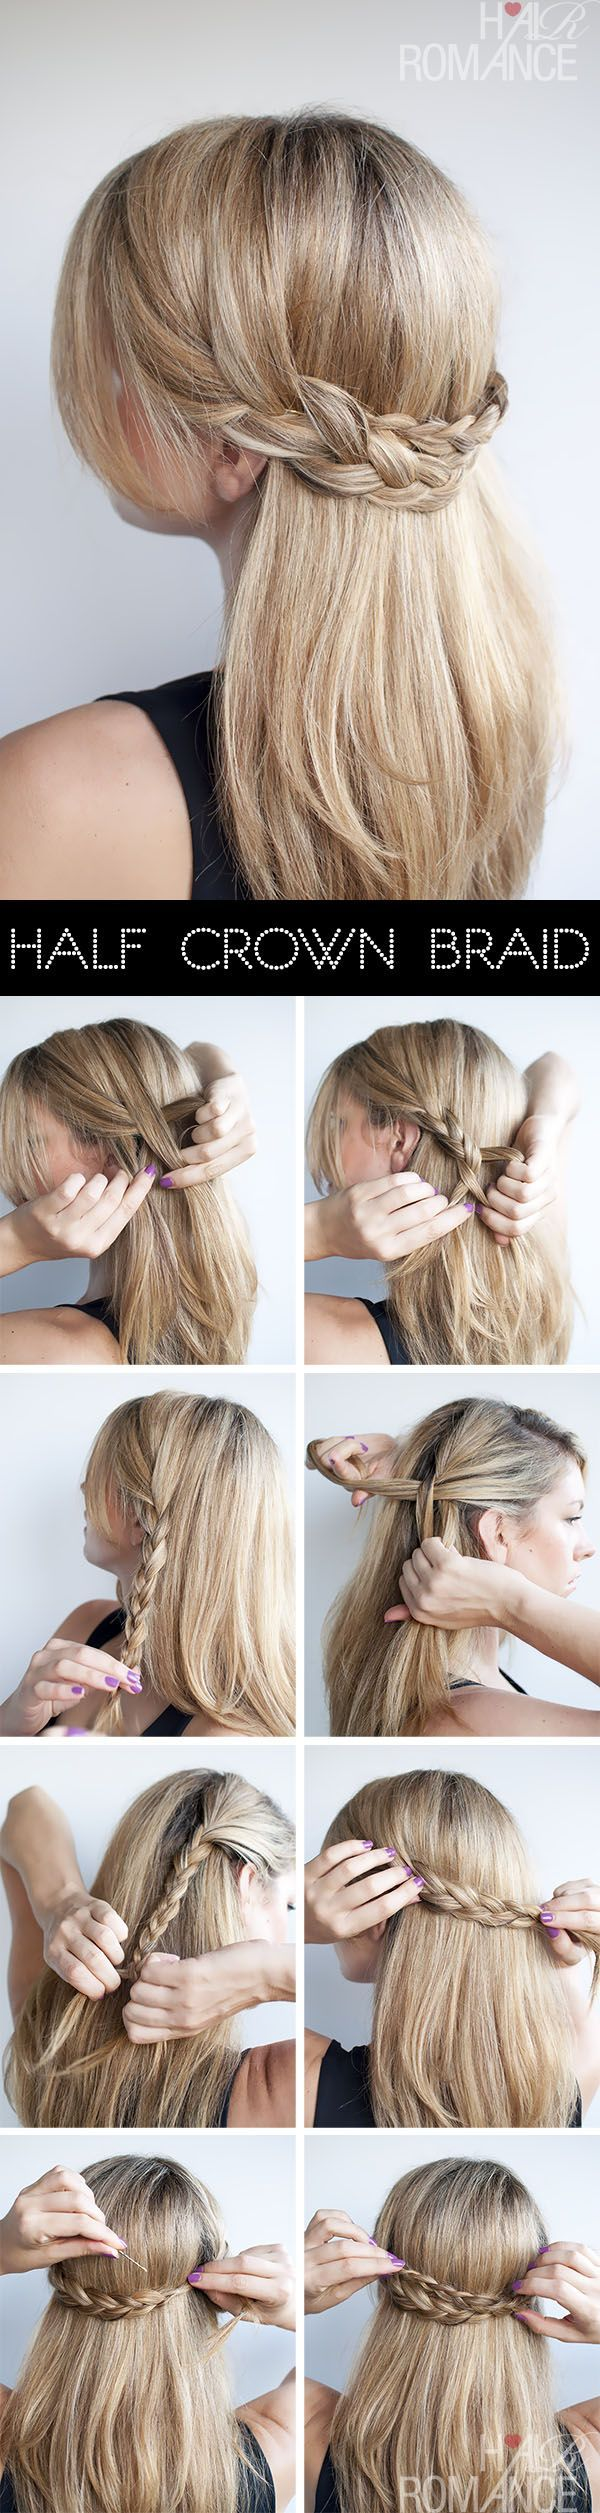 25+ unique diy party hairstyles ideas on pinterest | diy party